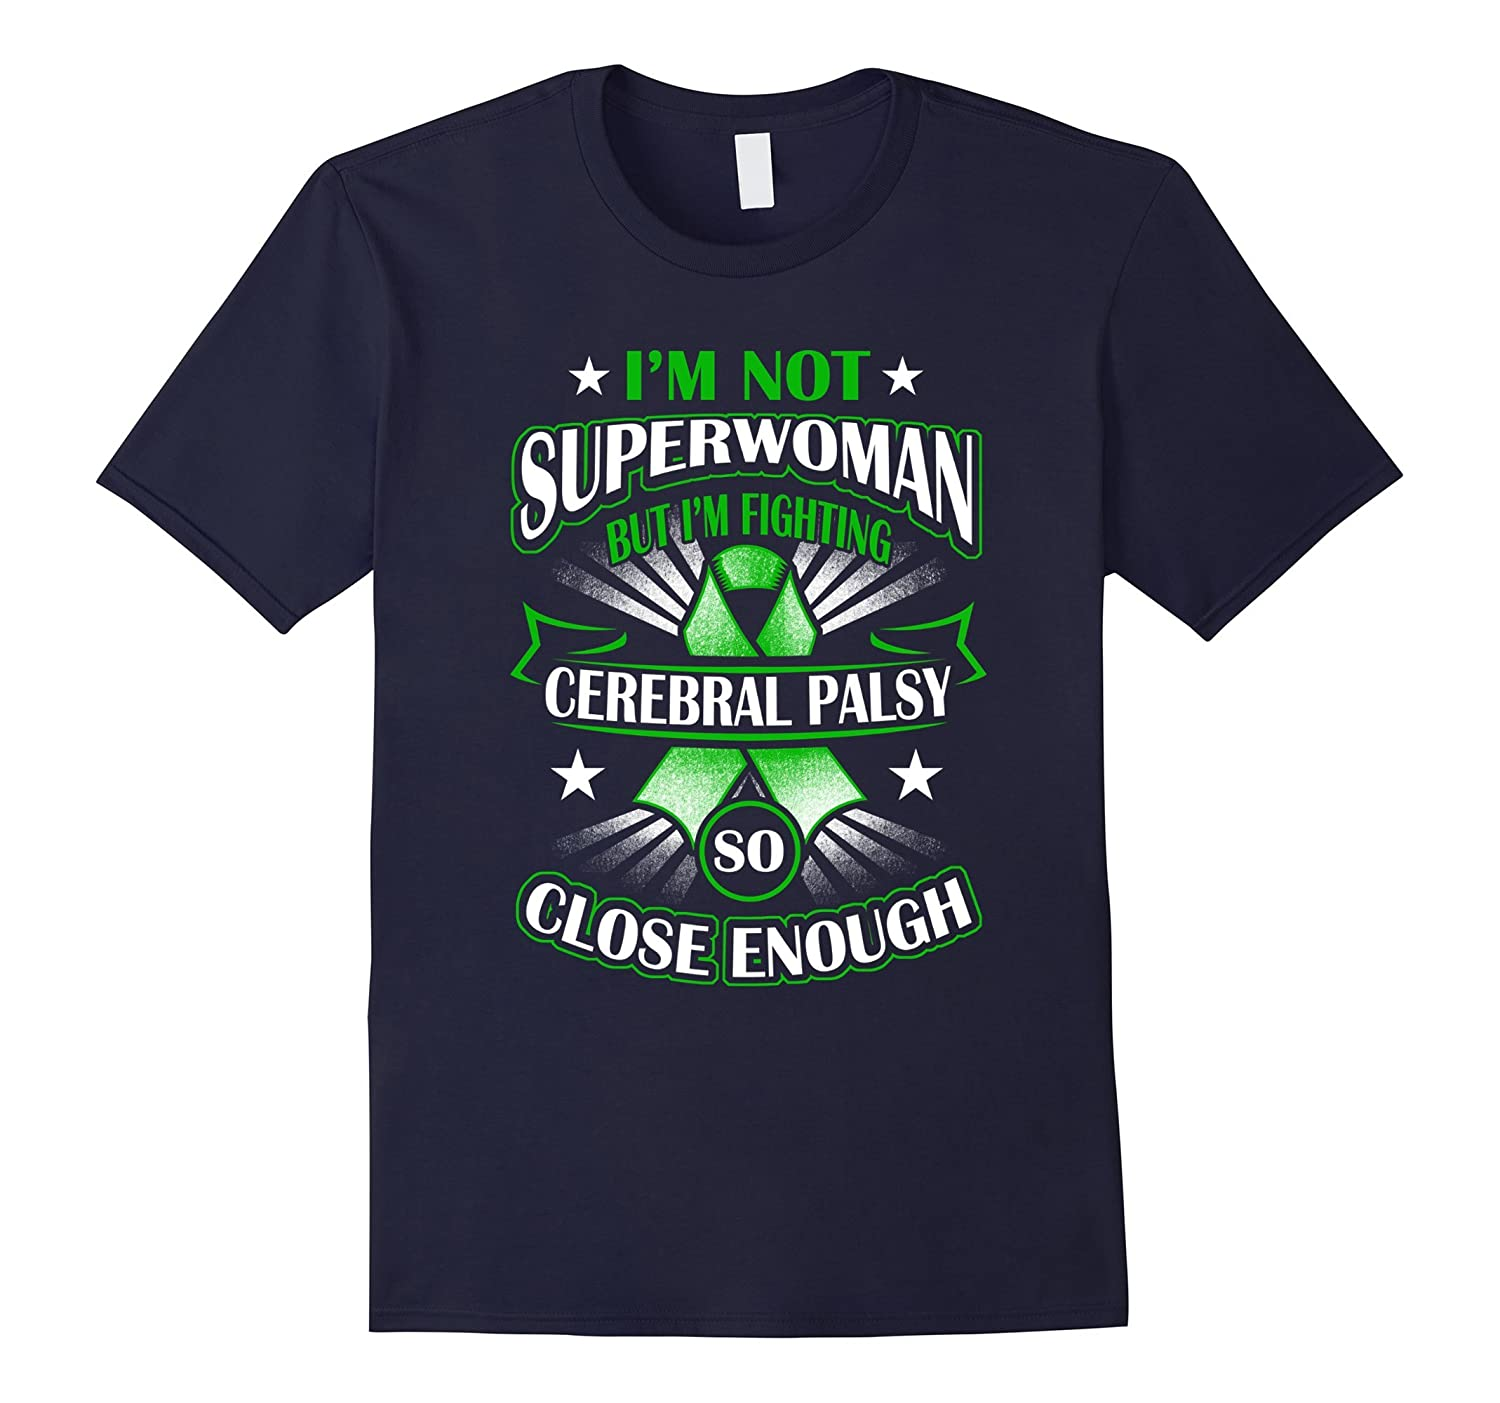 Cerebral Palsy Awareness T Shirt For Women-RT